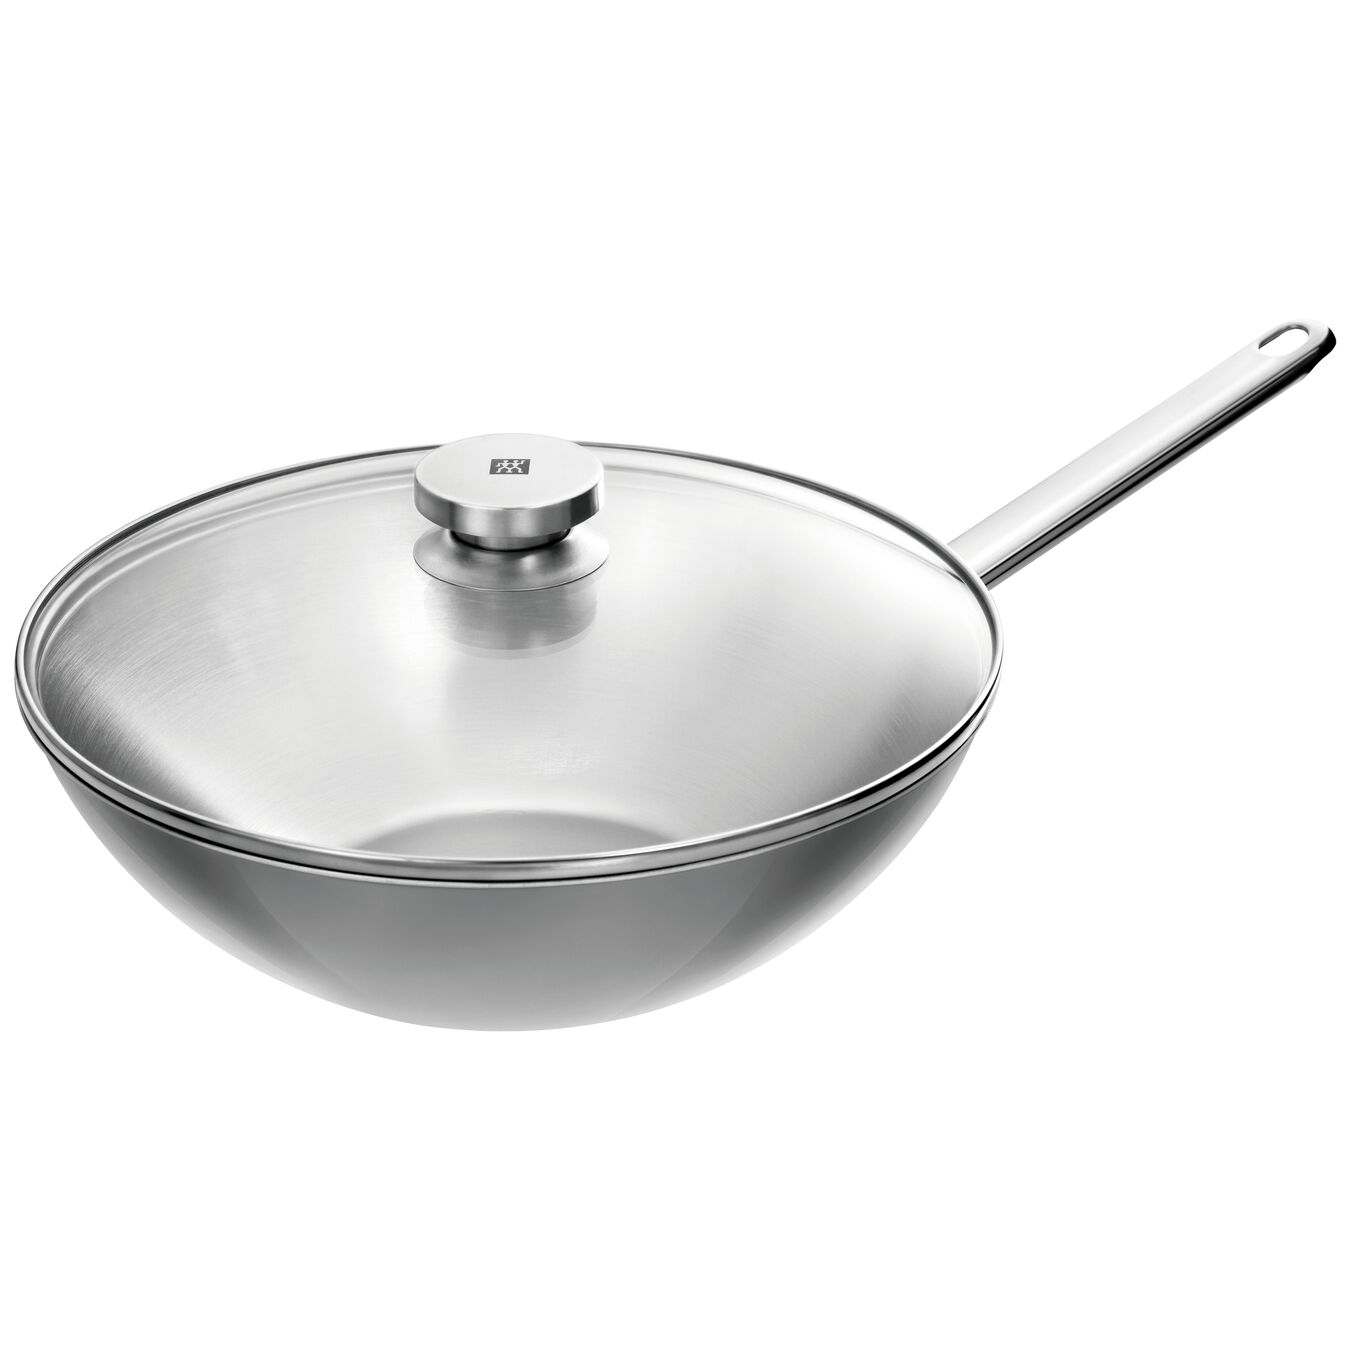 30 cm / 12 inch 18/10 Stainless Steel Wok,,large 1